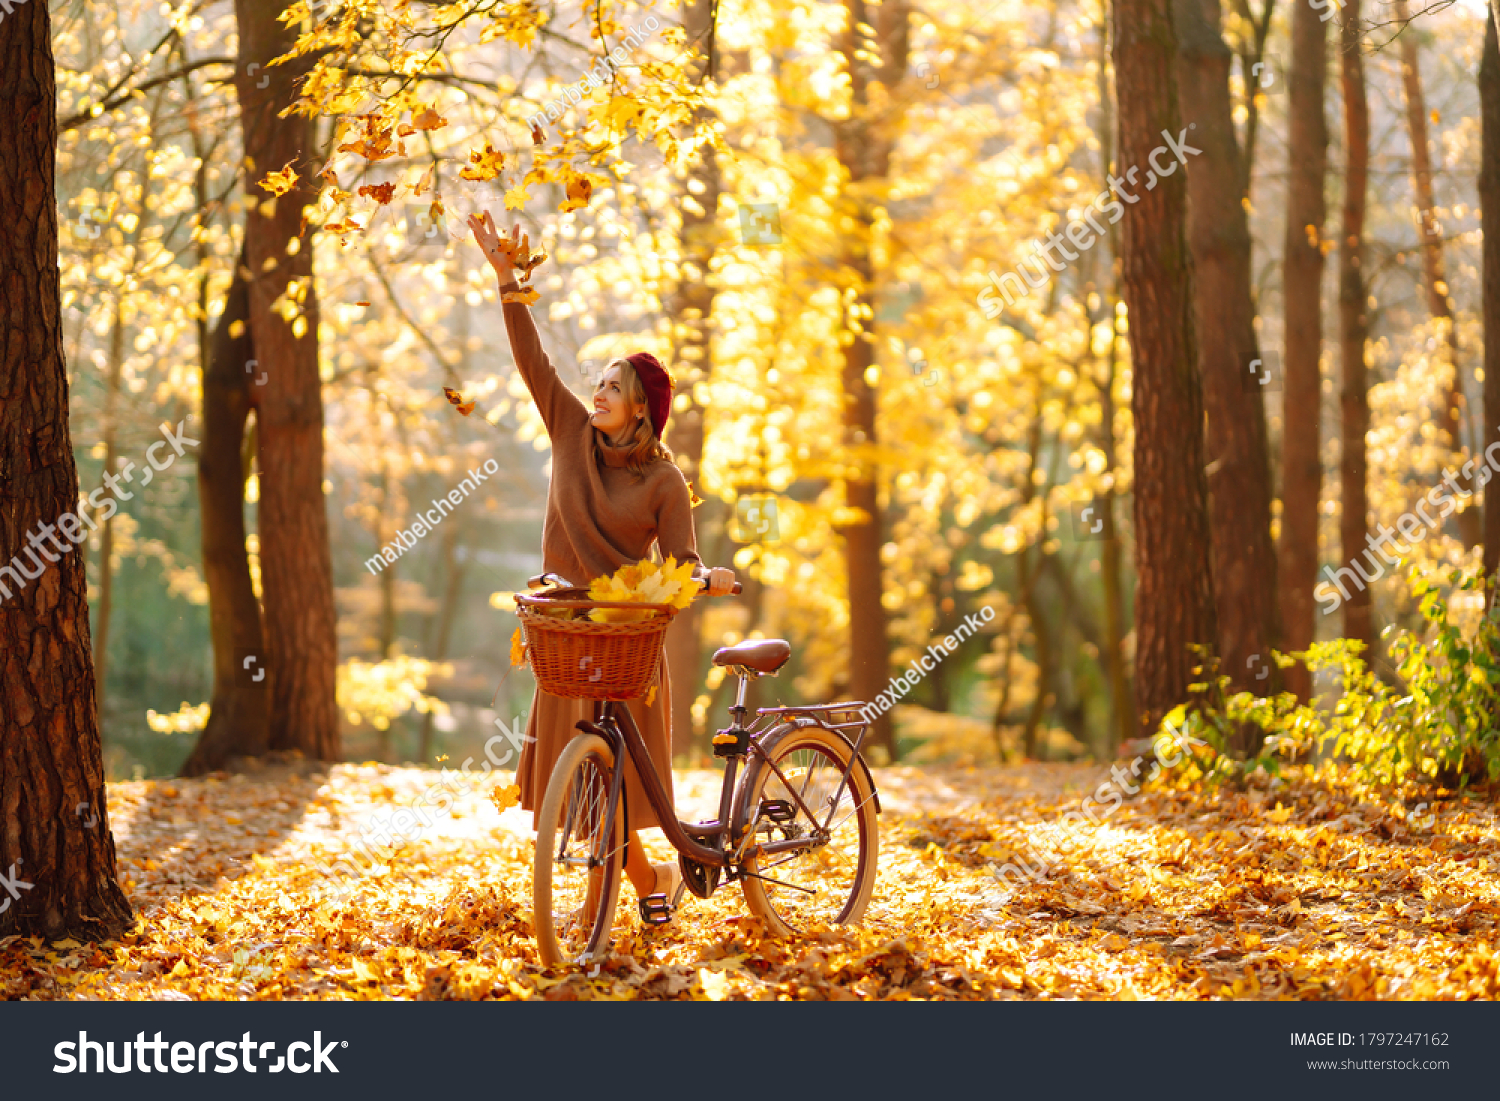 Beautiful Woman throws up autumn leaves and having fun  in autumn park. Relaxation, enjoying, solitude with nature. #1797247162